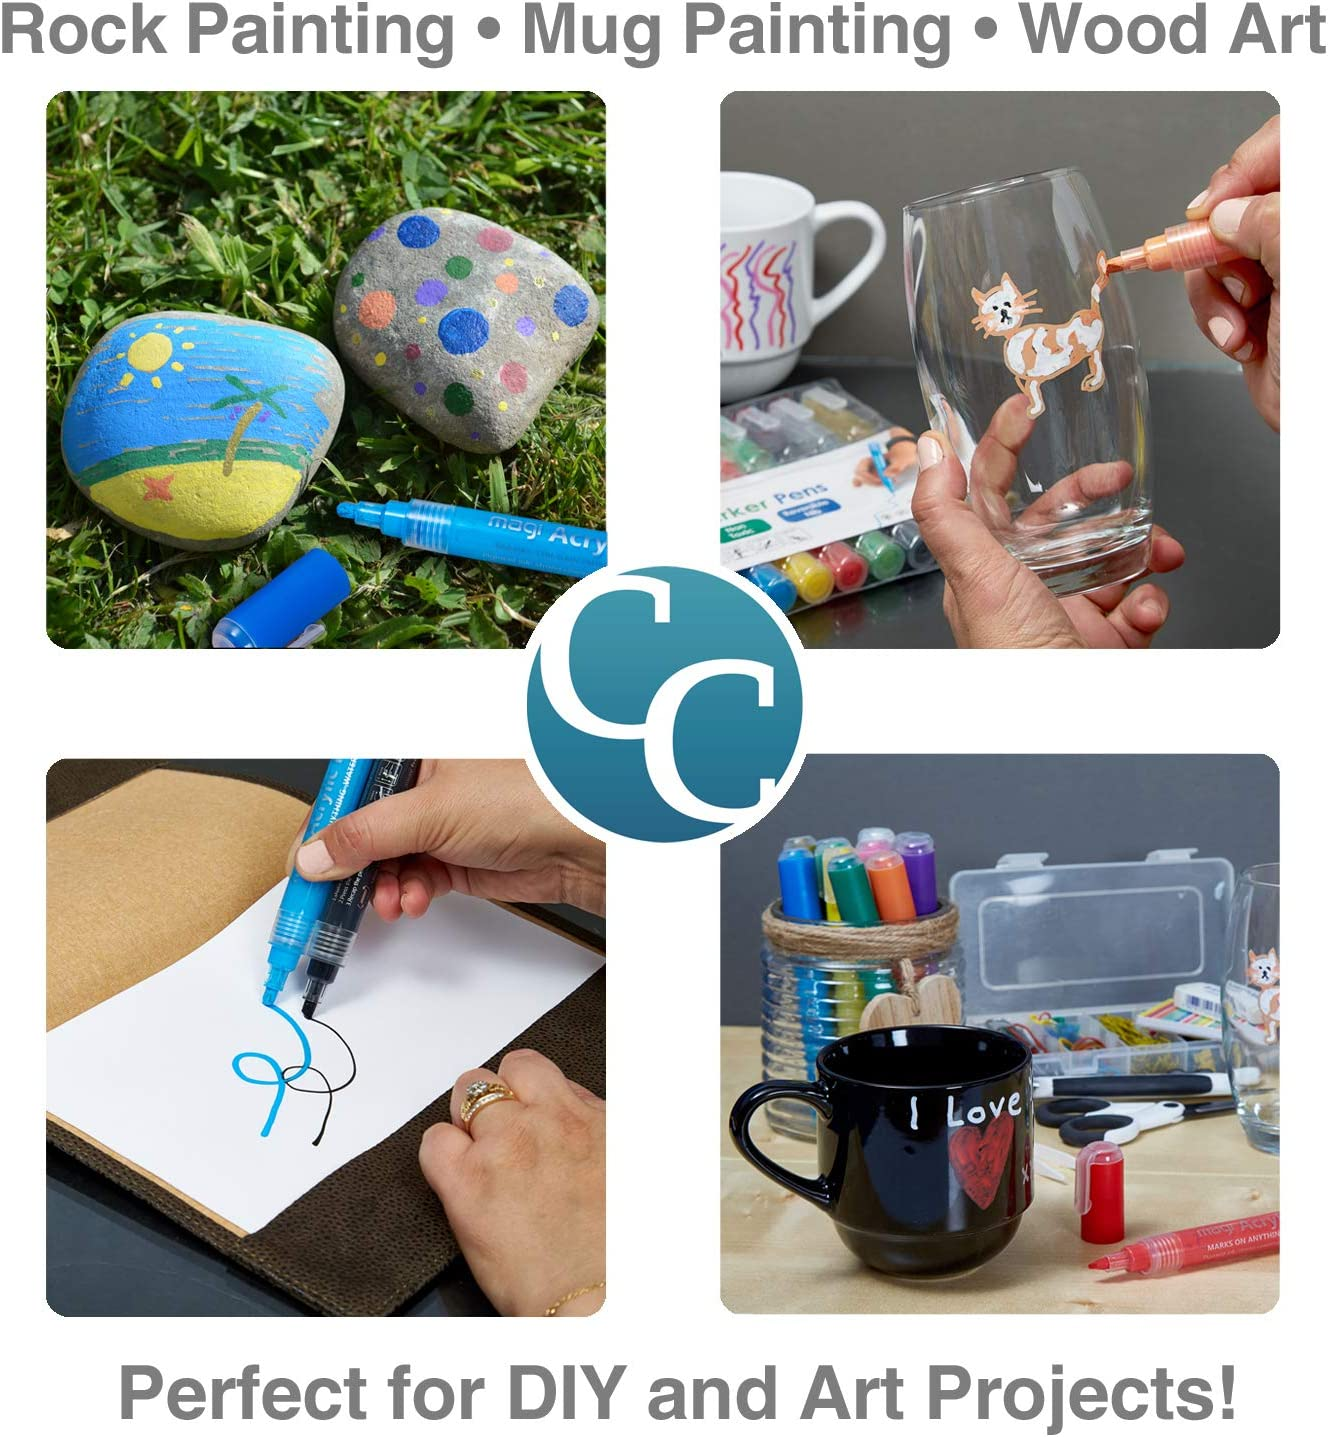 Metal and Ceramic... Cairncraft Paint pens for rock painting Wood Glass